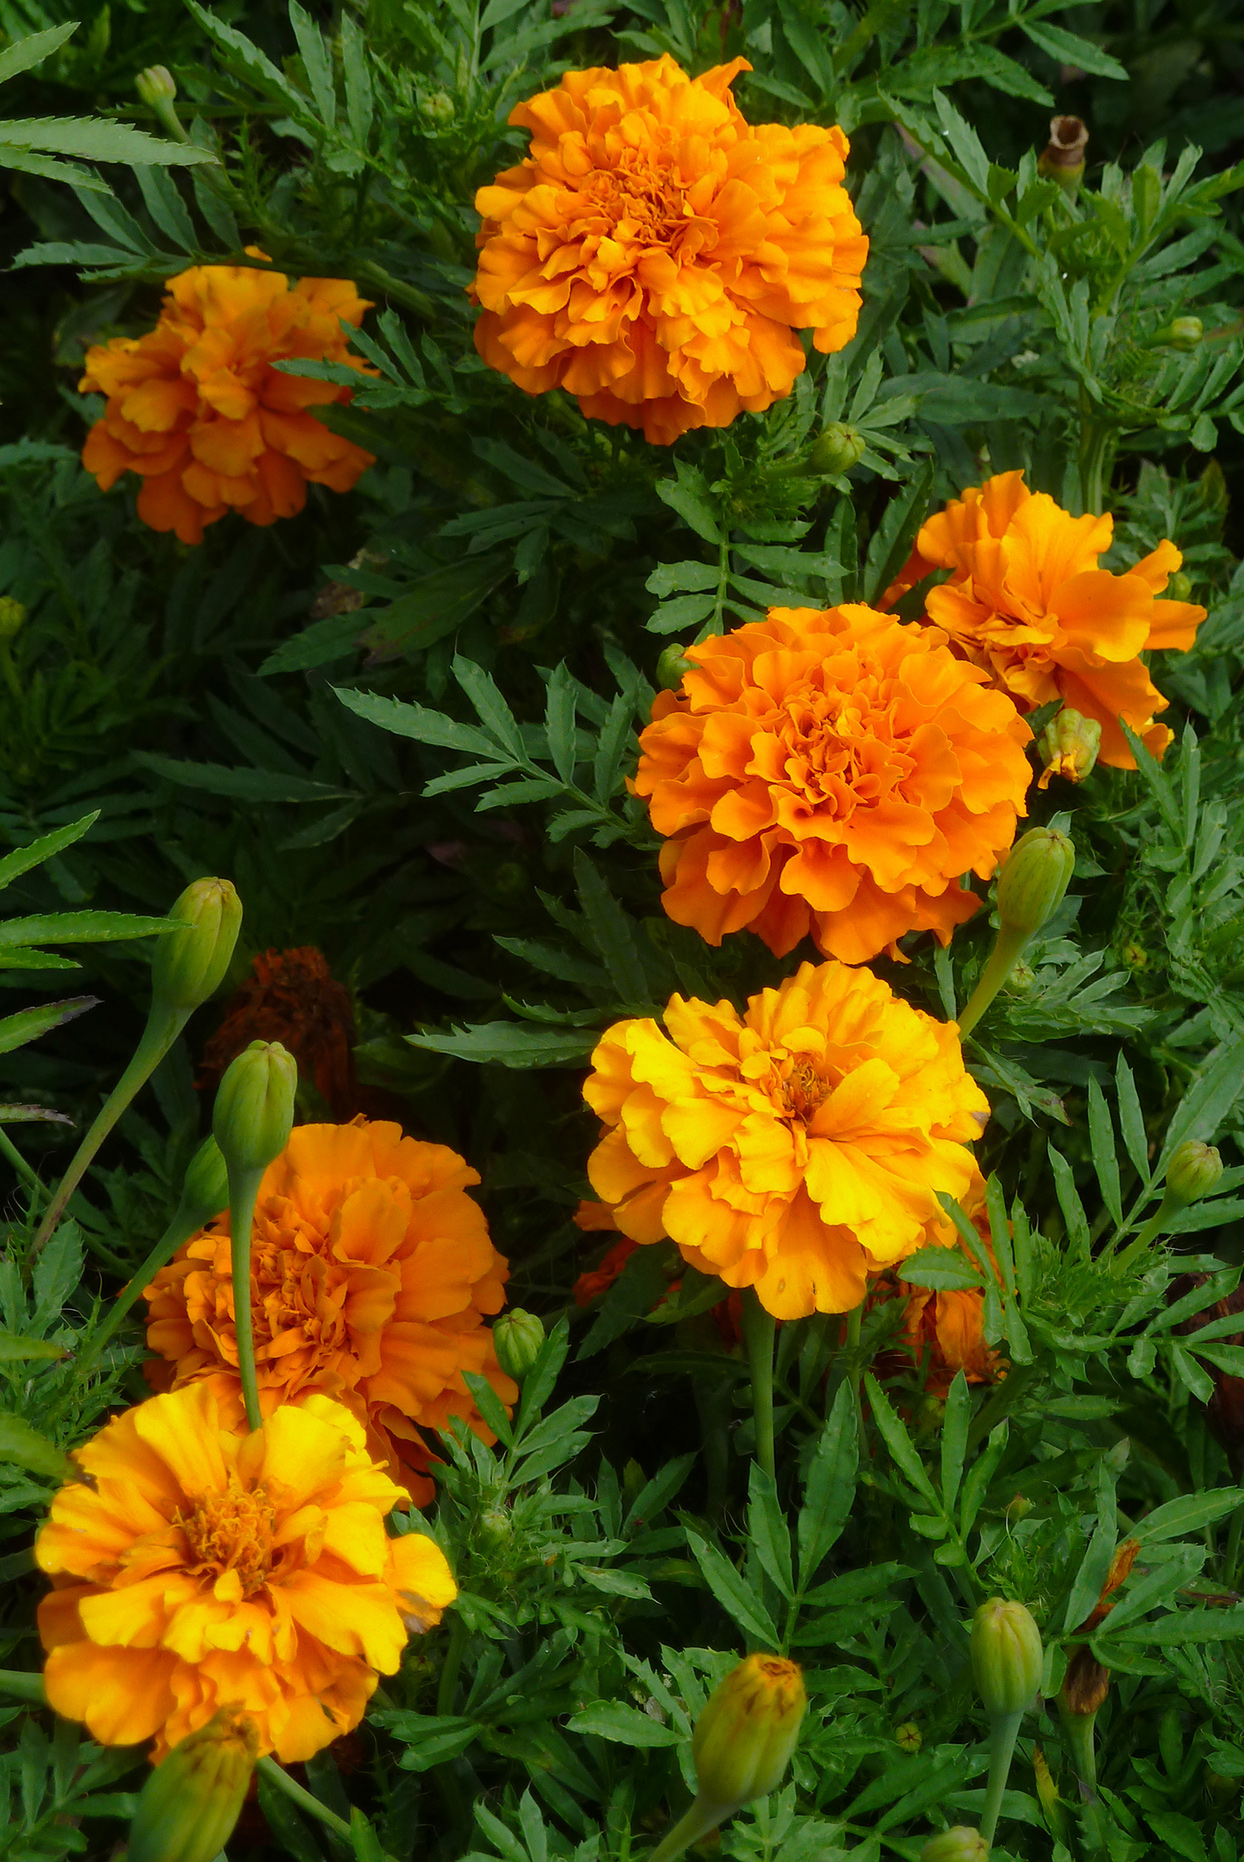 orange marigolds with green foliage